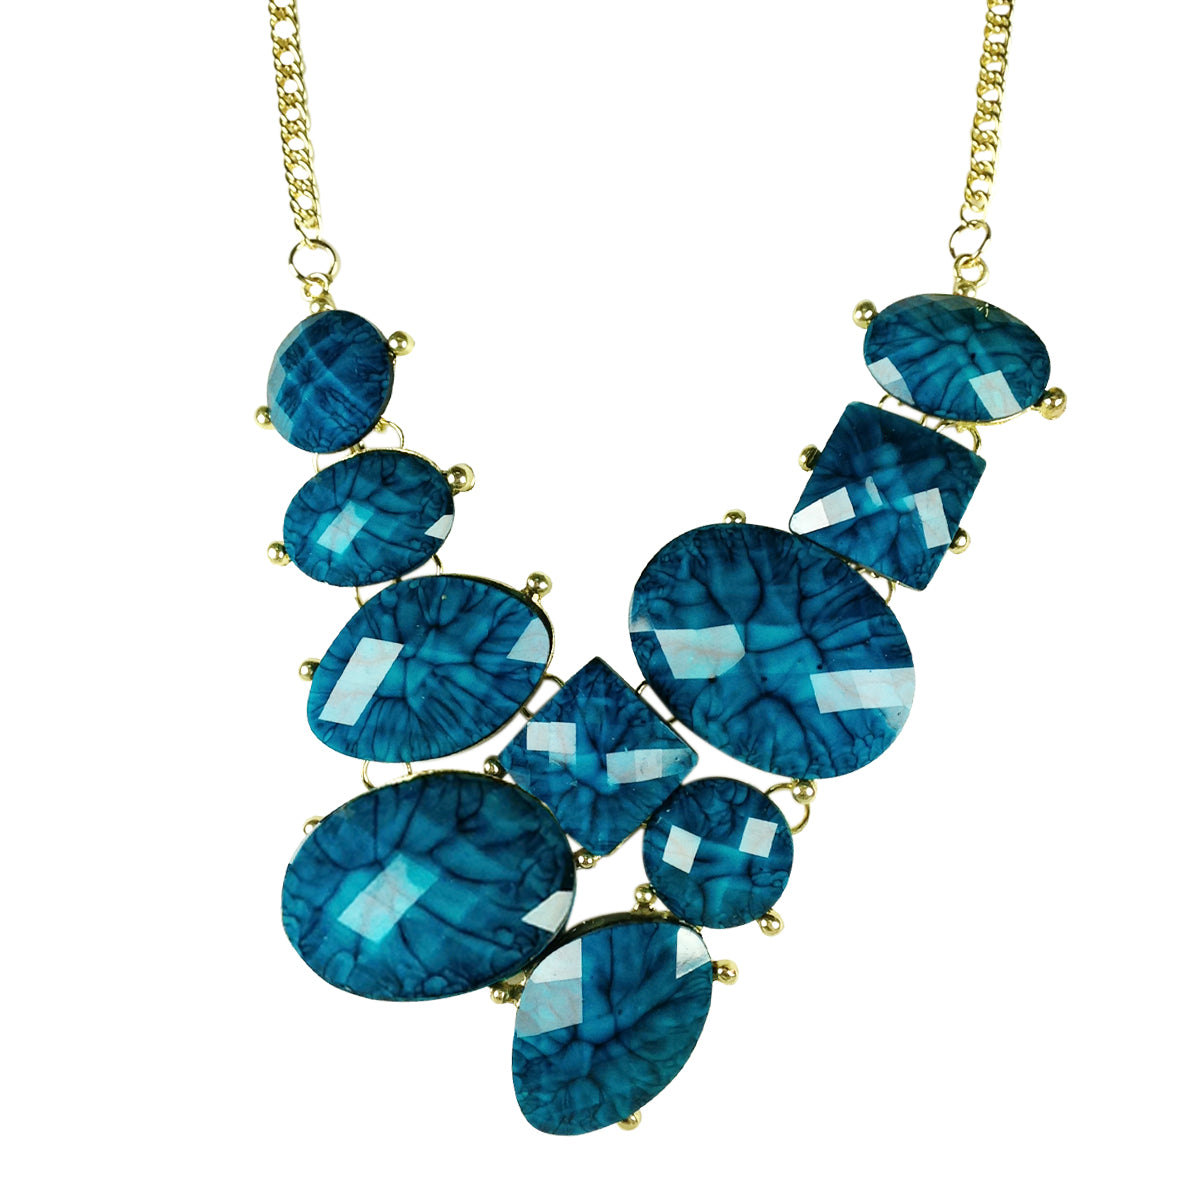 Faceted Resin Bubble Bib Statement Necklace